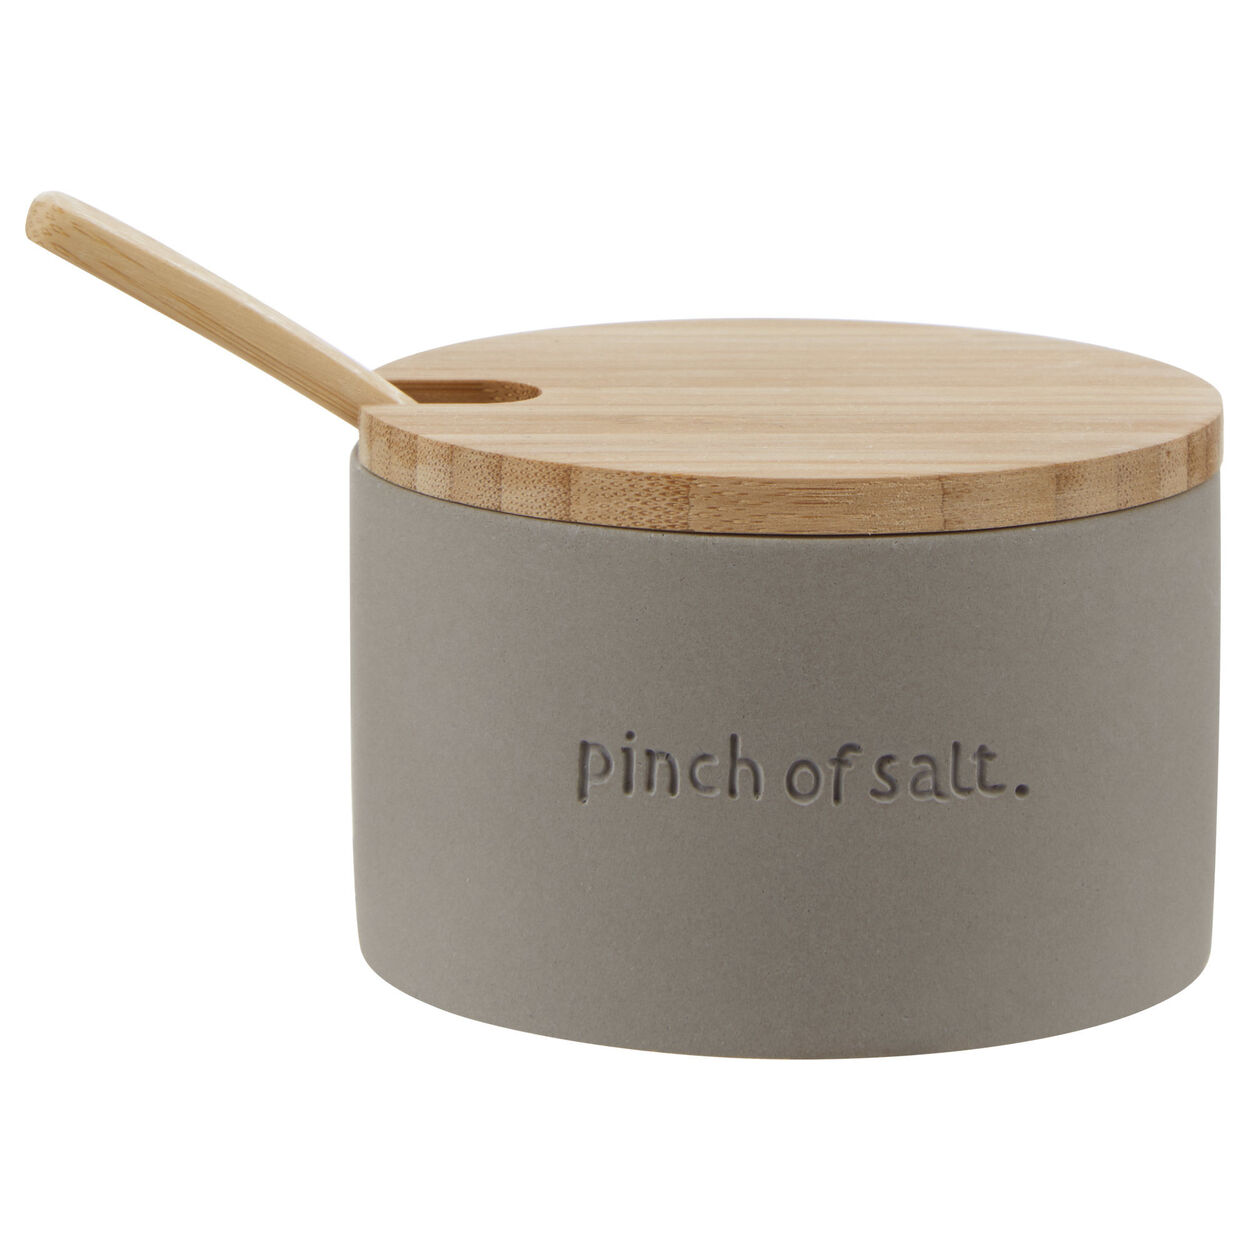 Cement Salt Jar with Bamboo Lid and Spoon